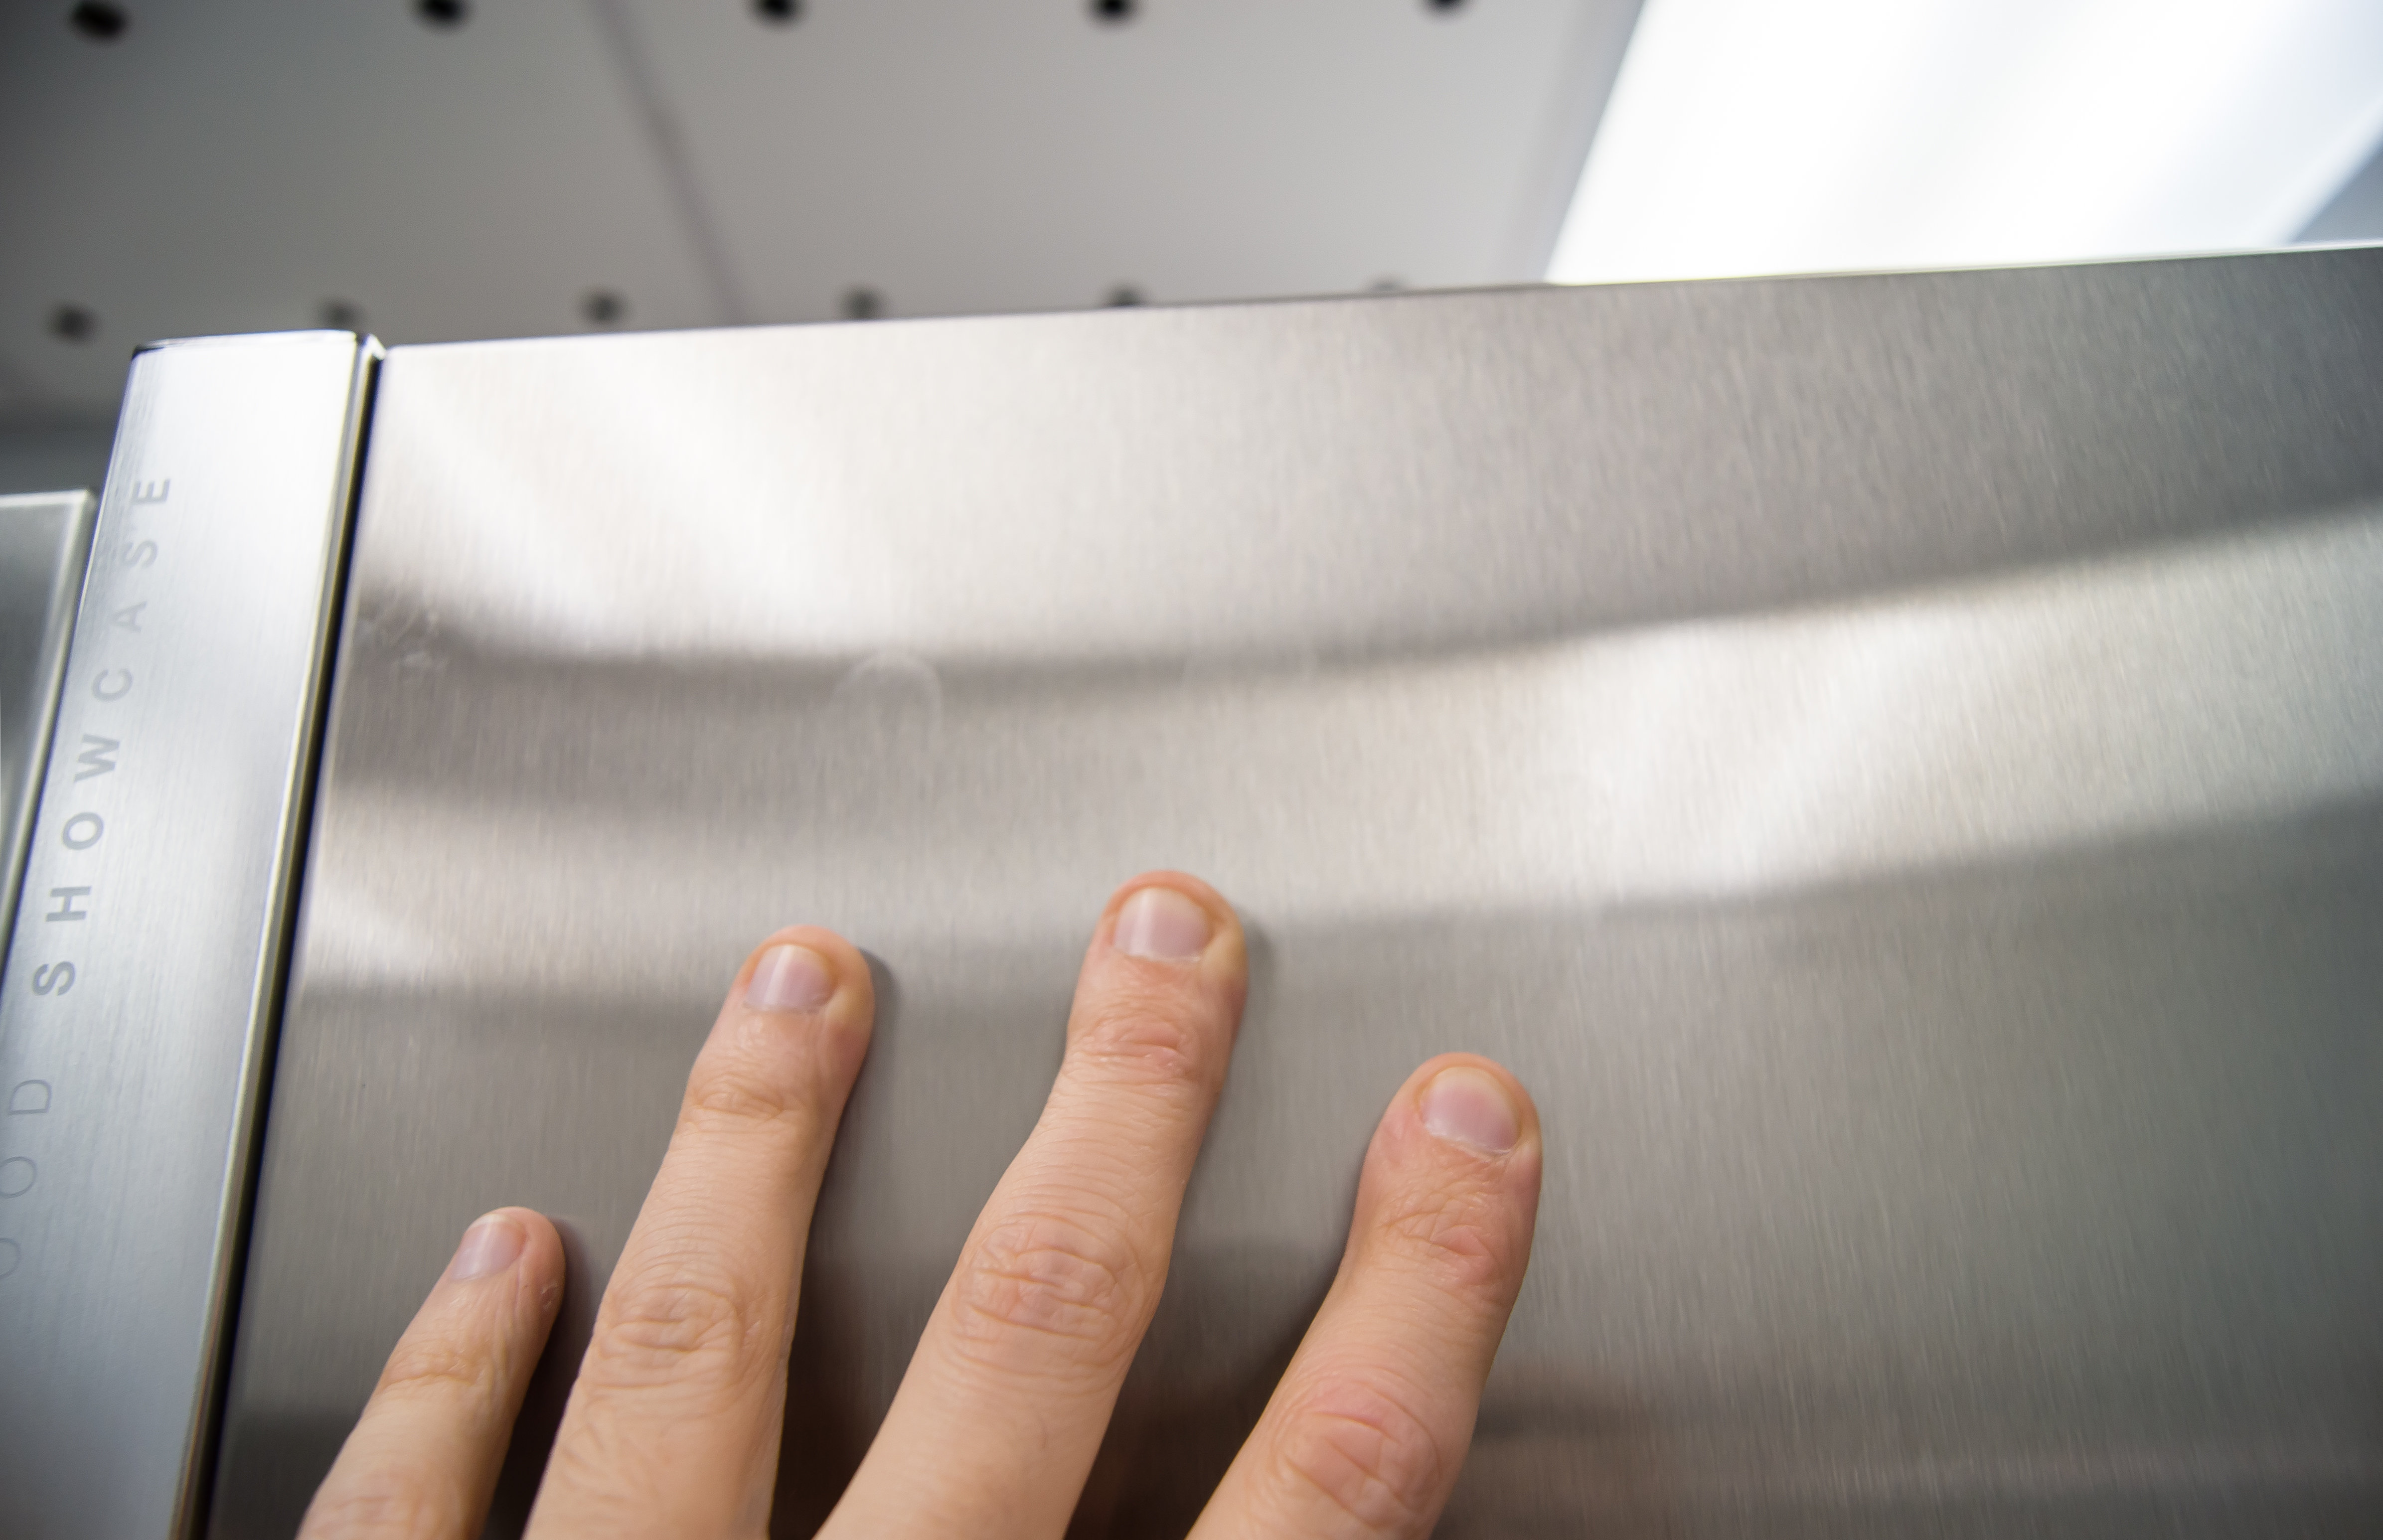 Surprisingly, the Samsung RH29H9000SR Food Showcase's stainless exterior is very resistant to smudging.